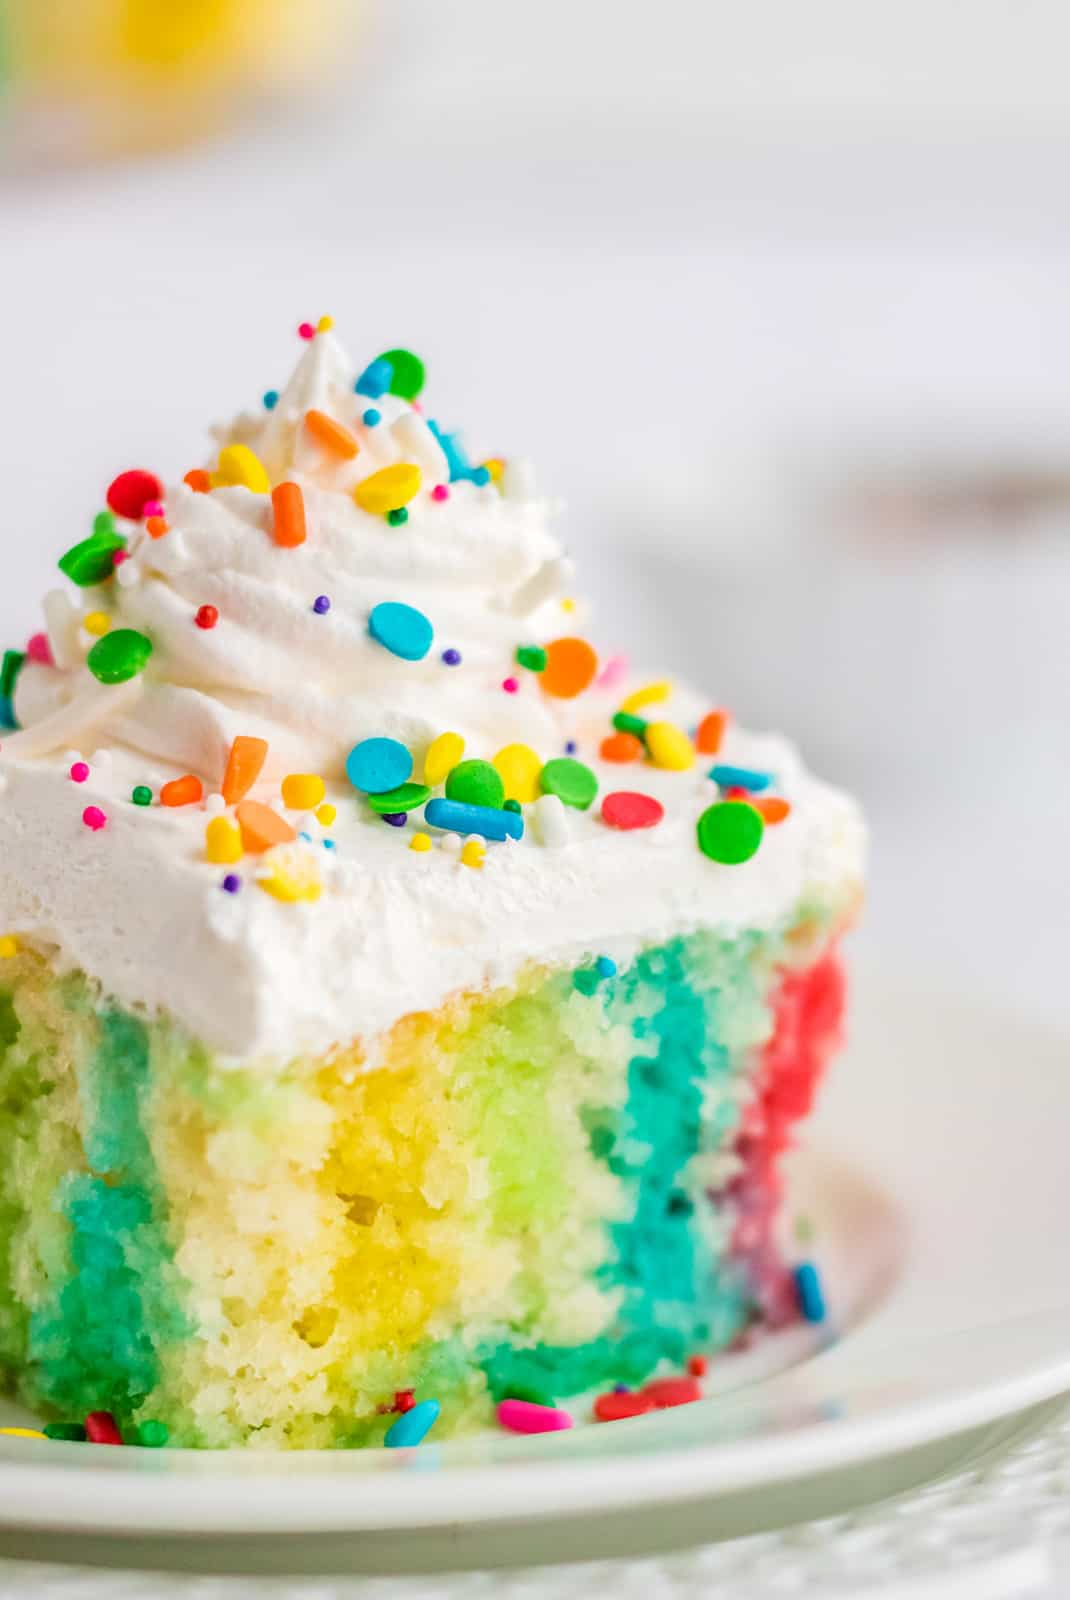 Close up side view of Jello Poke Cake showing colors